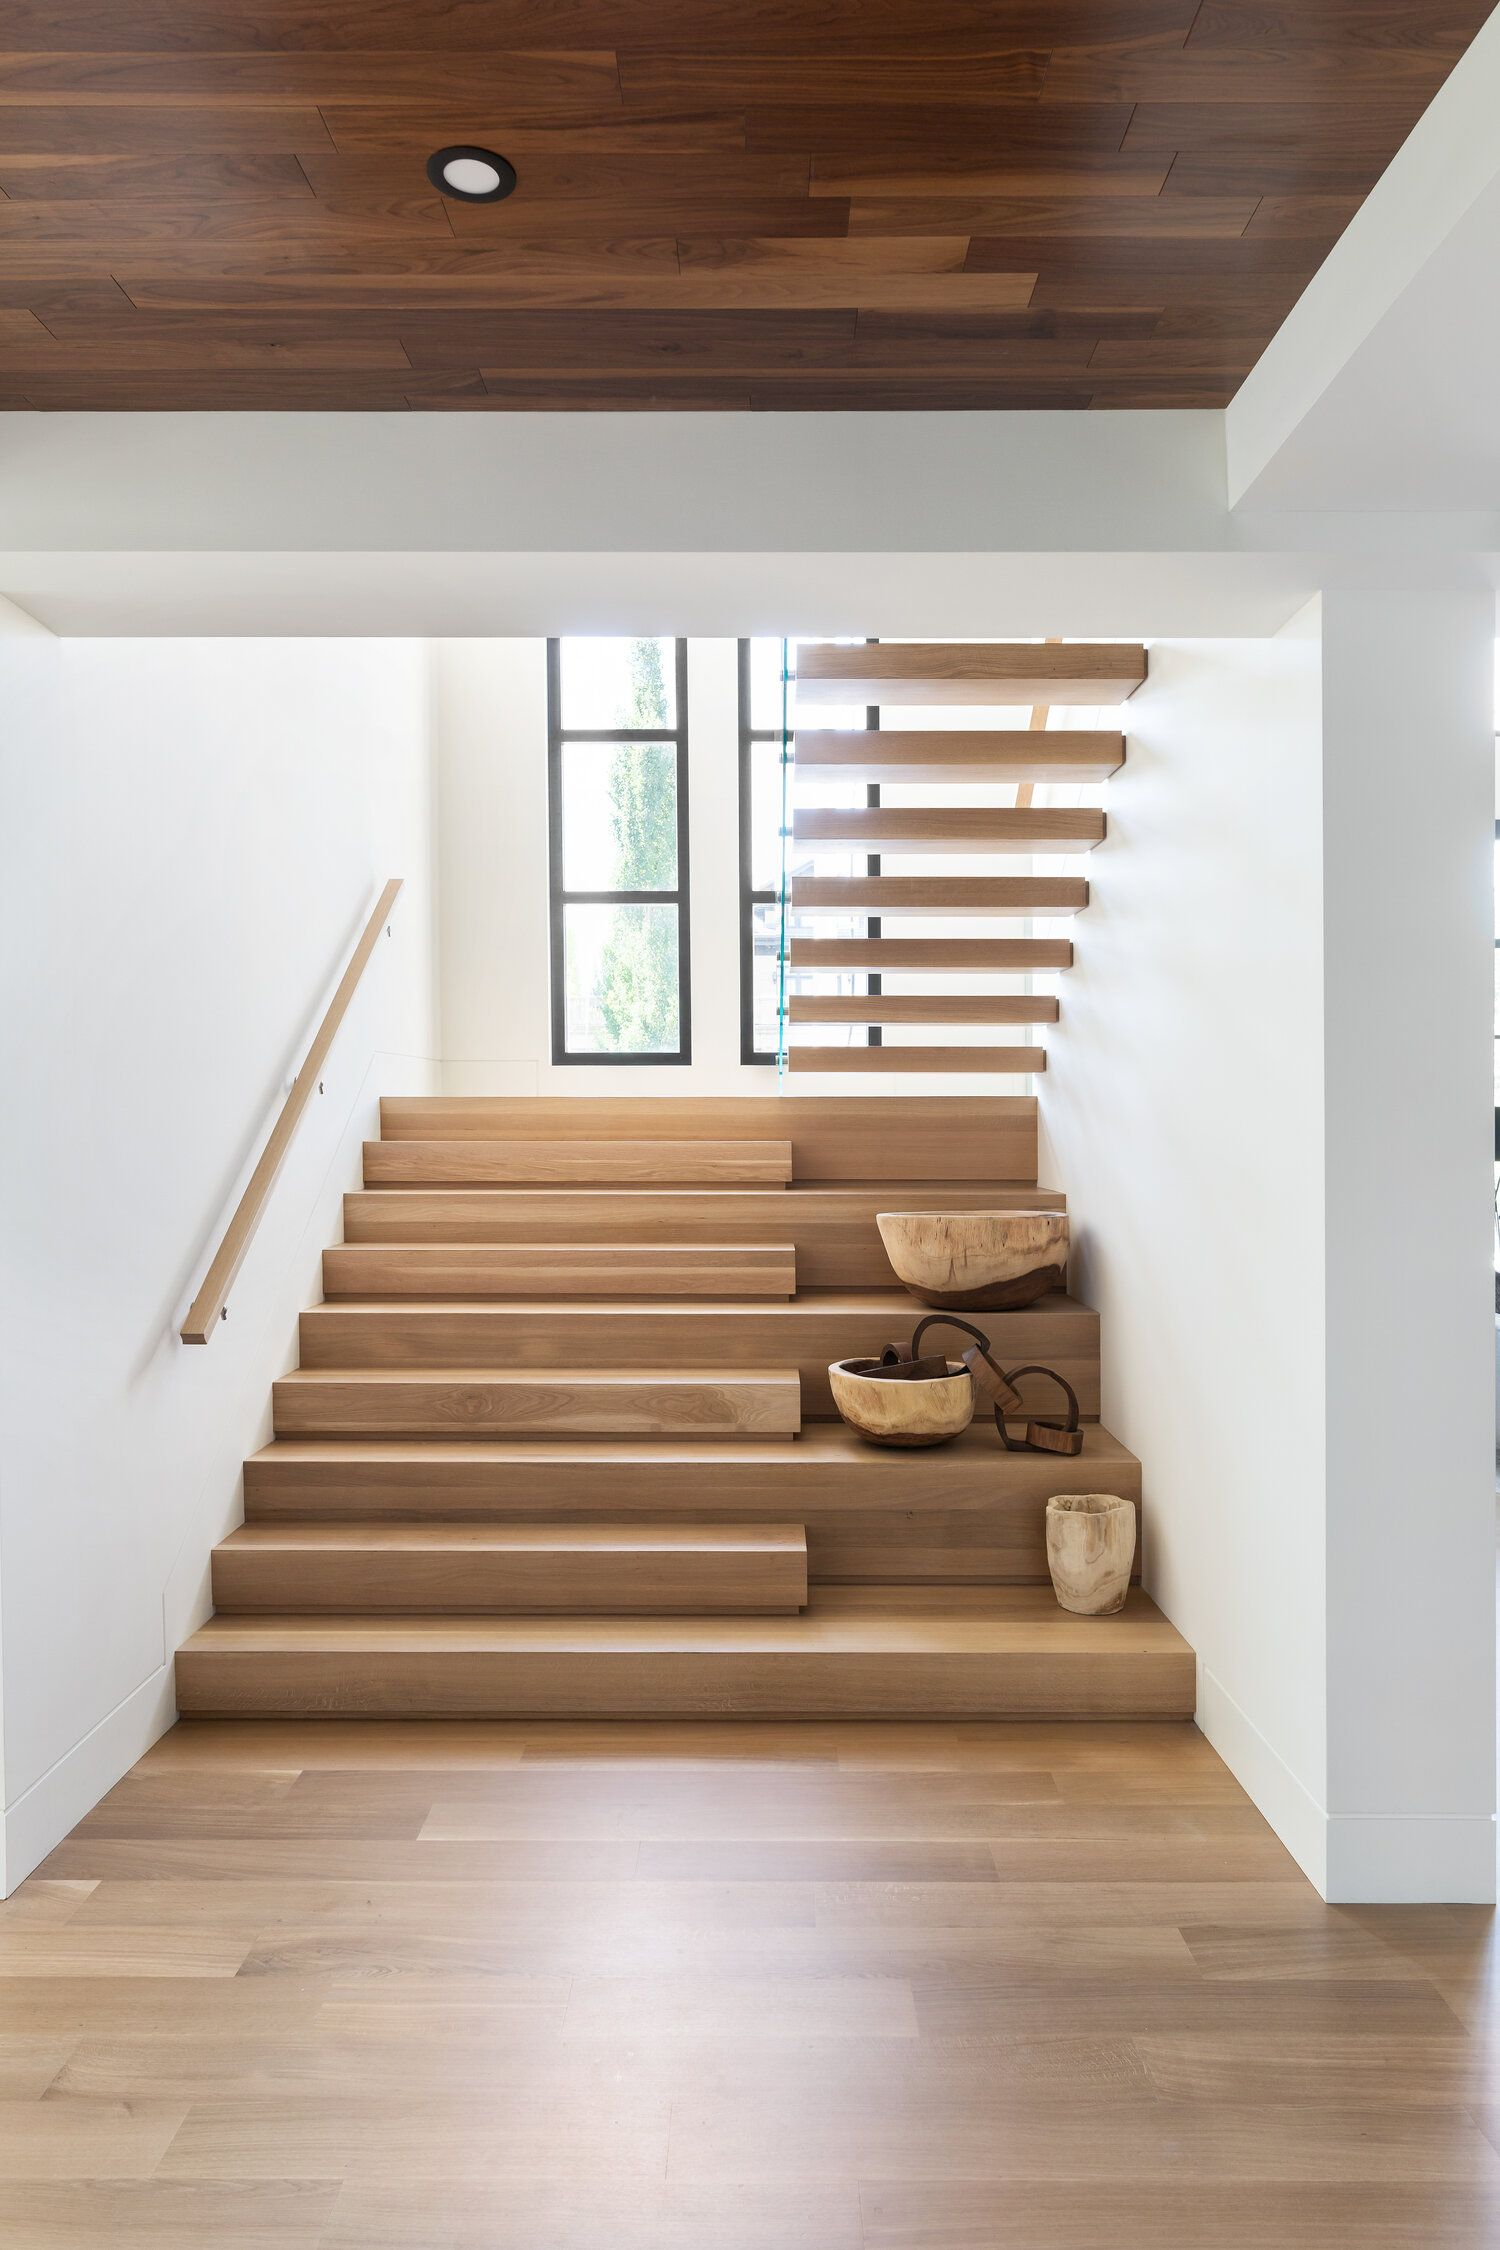 Nyla Free Designs Inc. - Mount Royal in 2020 | Home stairs ...